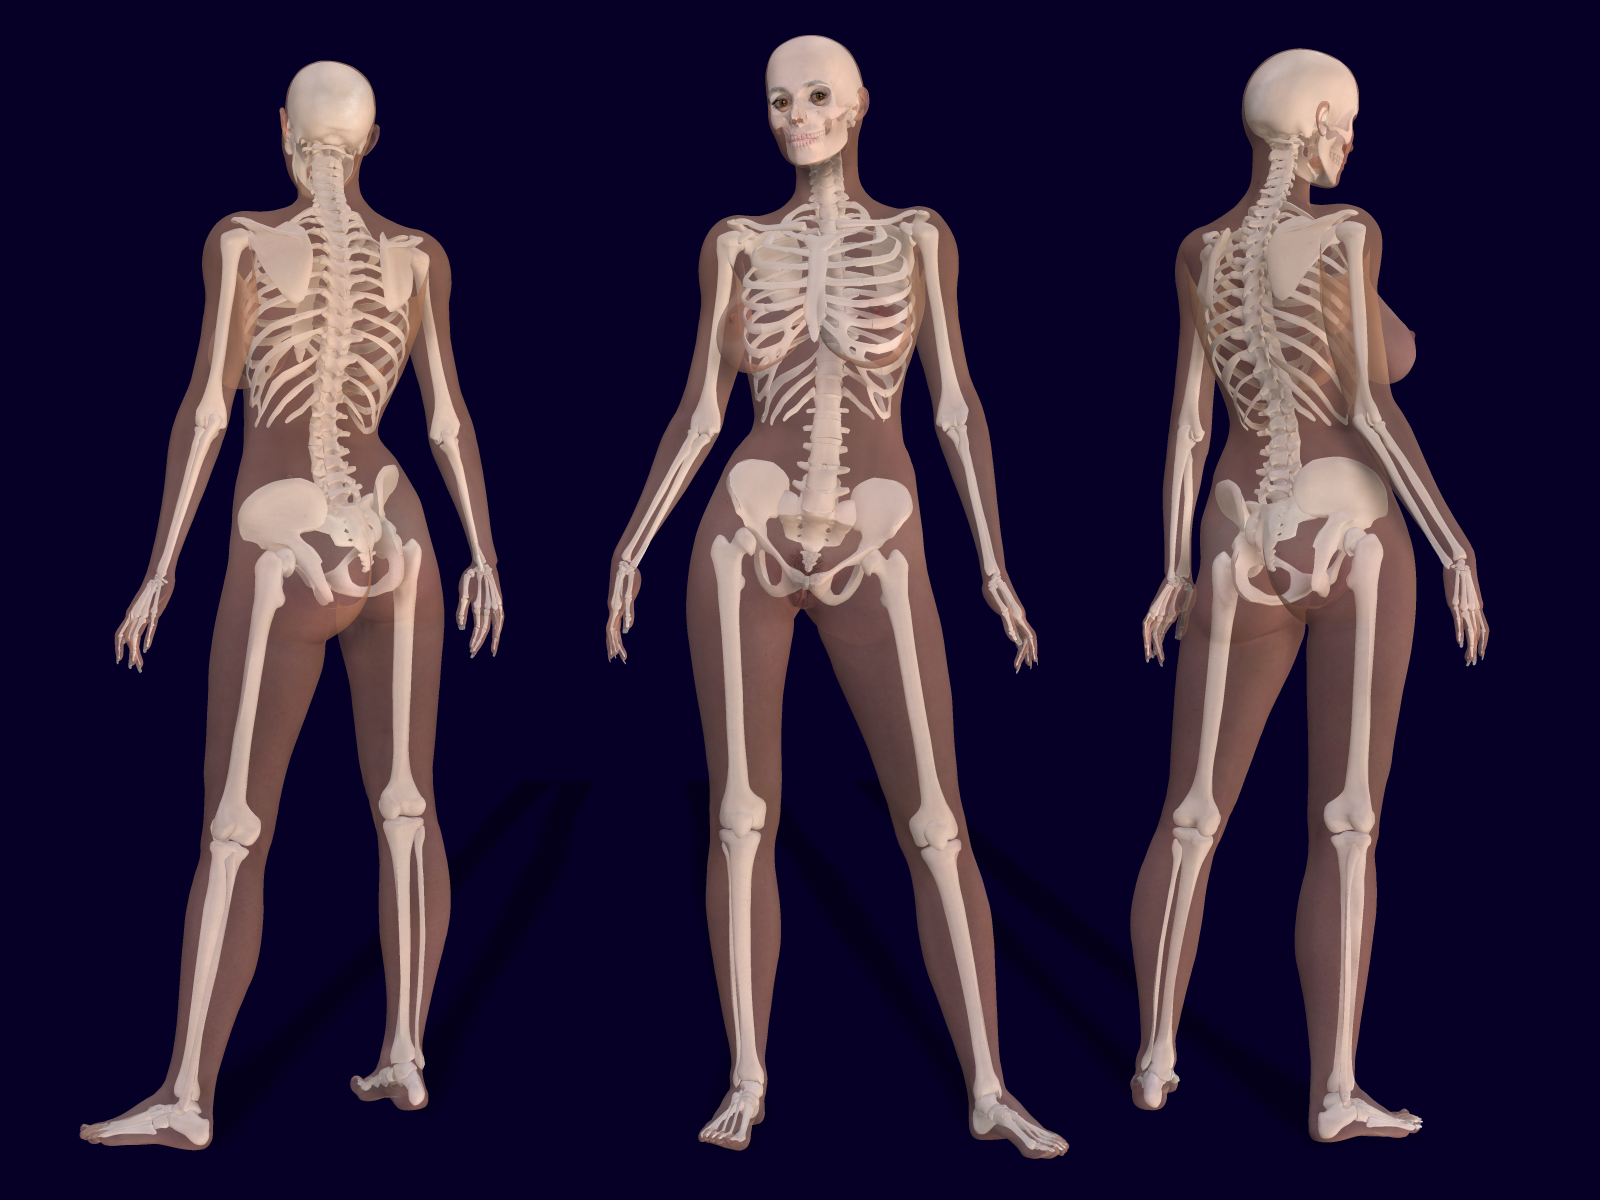 Learn Anatomy & Physiology Online | Female skeleton, Google images ...